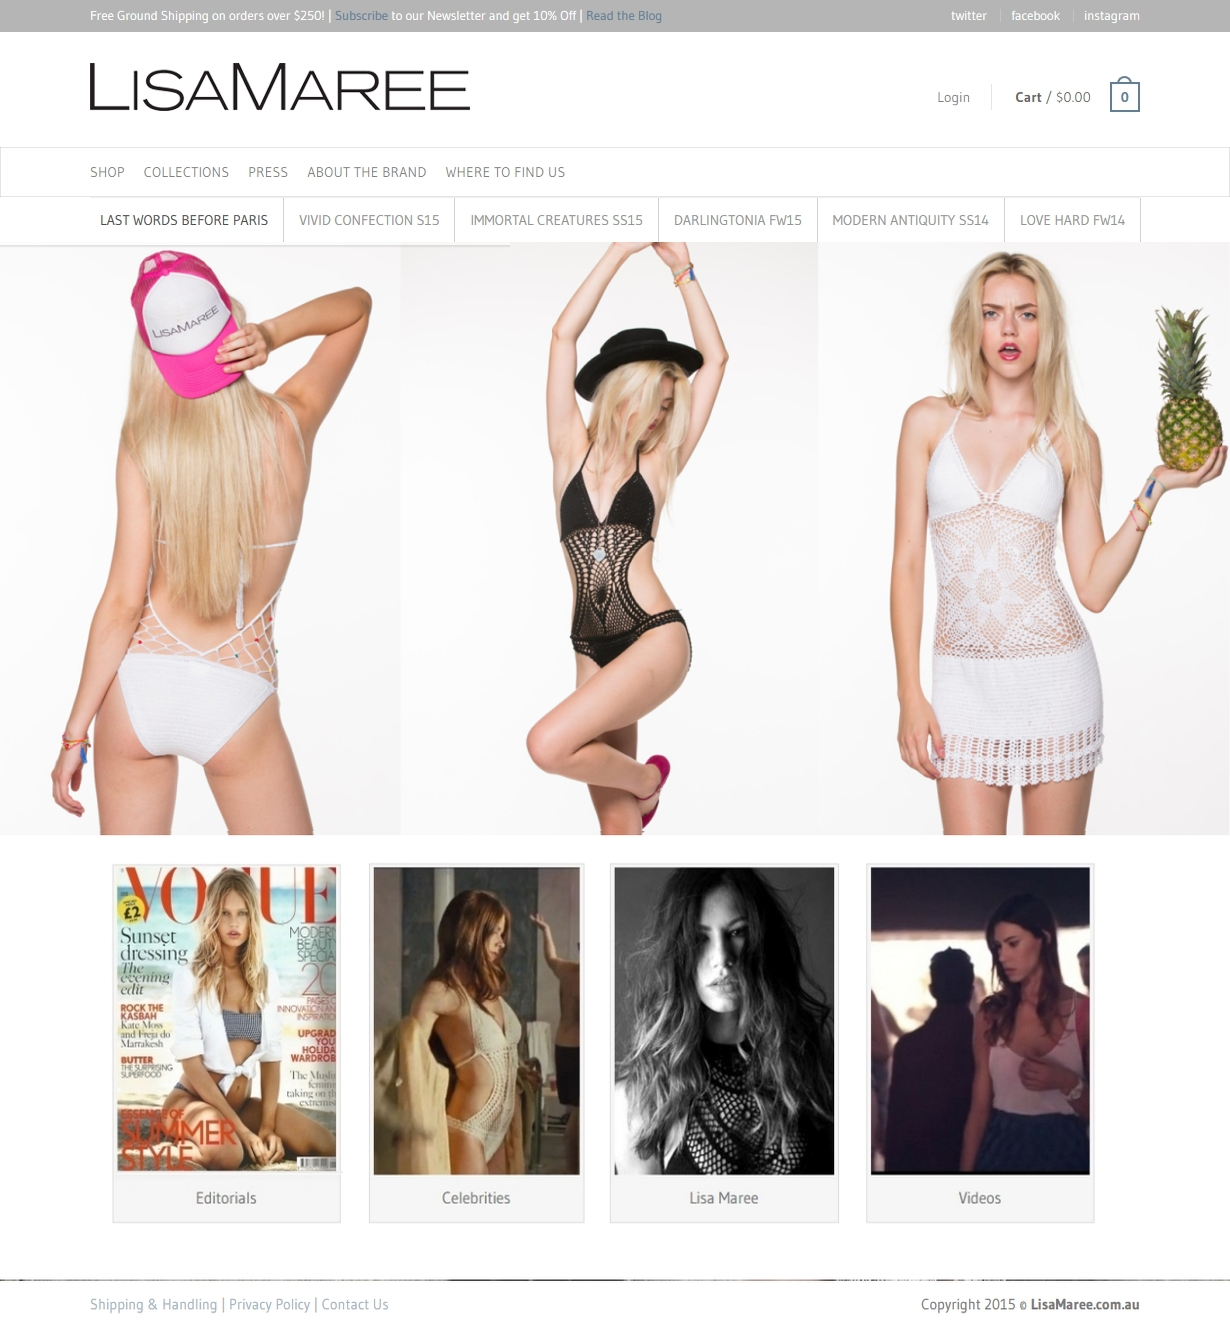 Lisa maree Homepage - Market Sharx